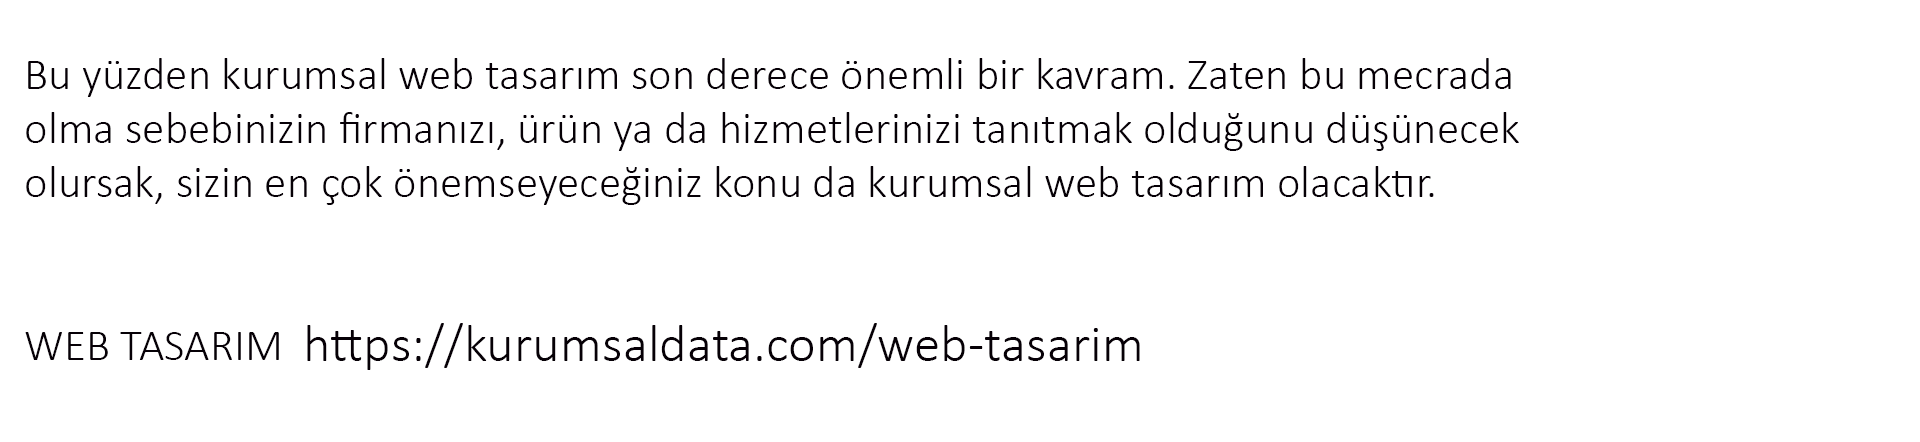 backlink alma yöntemi